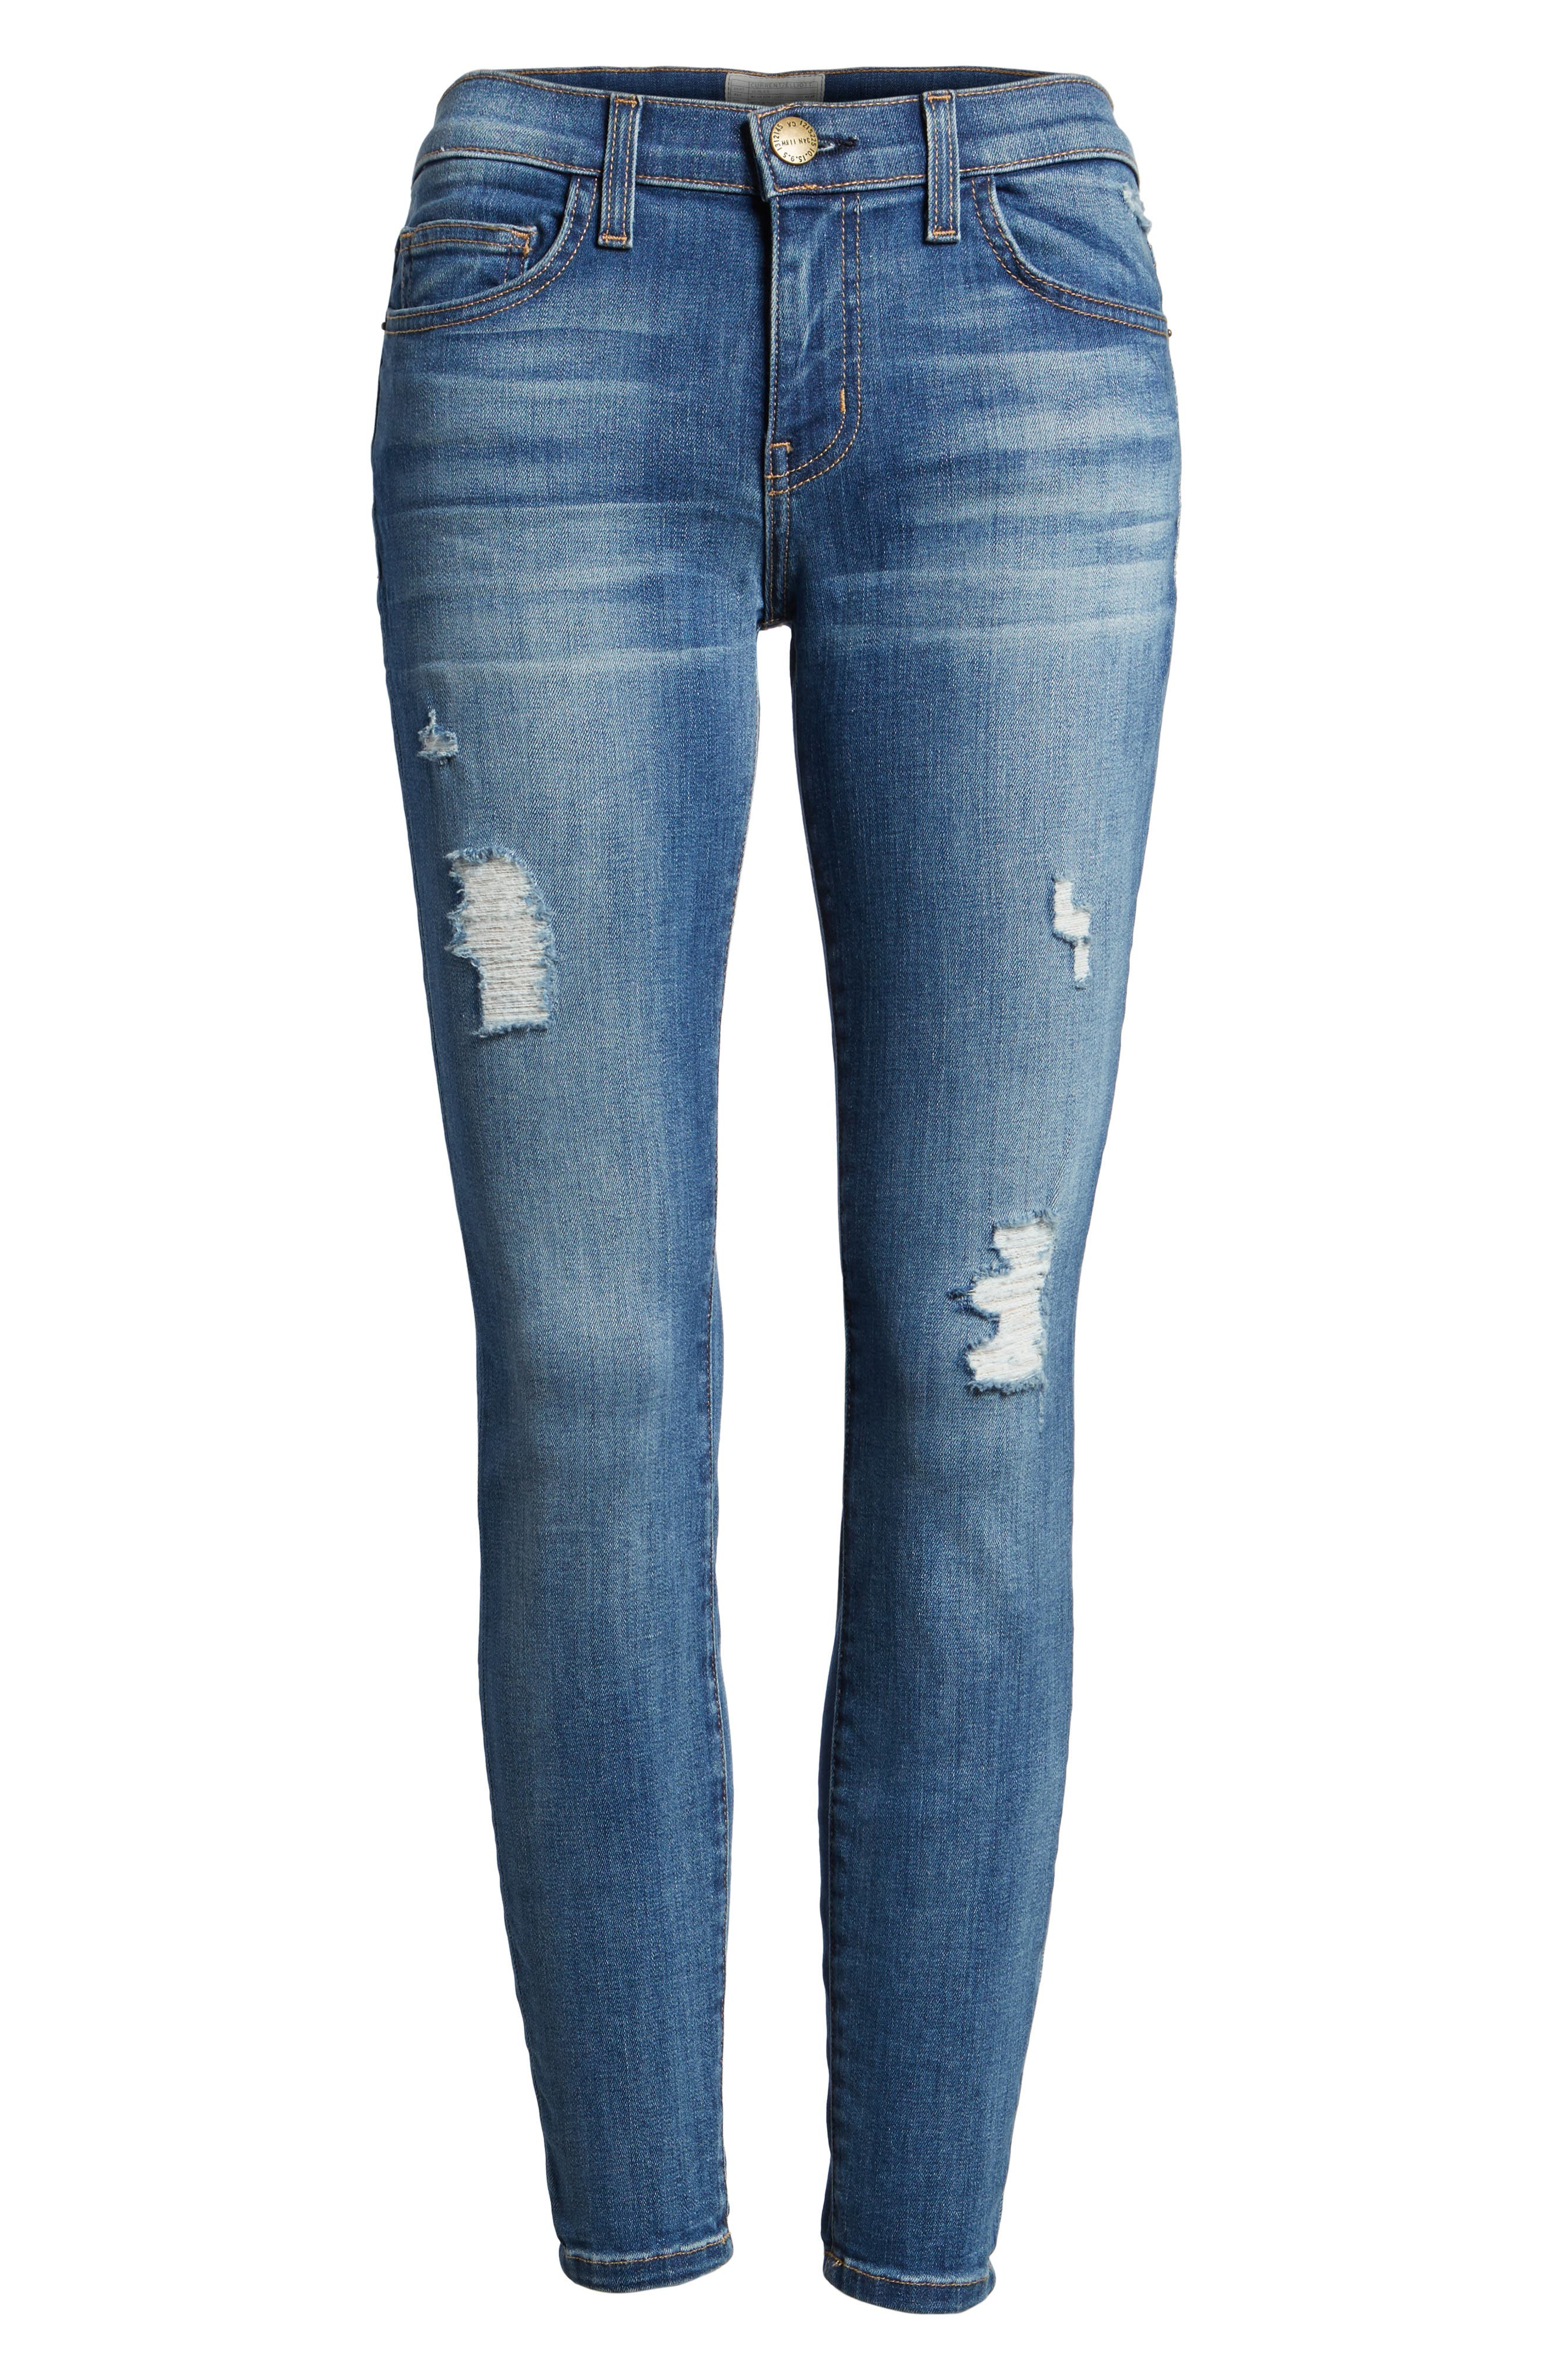 CURRENT/ELLIOTT,                             'The Stiletto' Destroyed Skinny Jeans,                             Main thumbnail 1, color,                             475